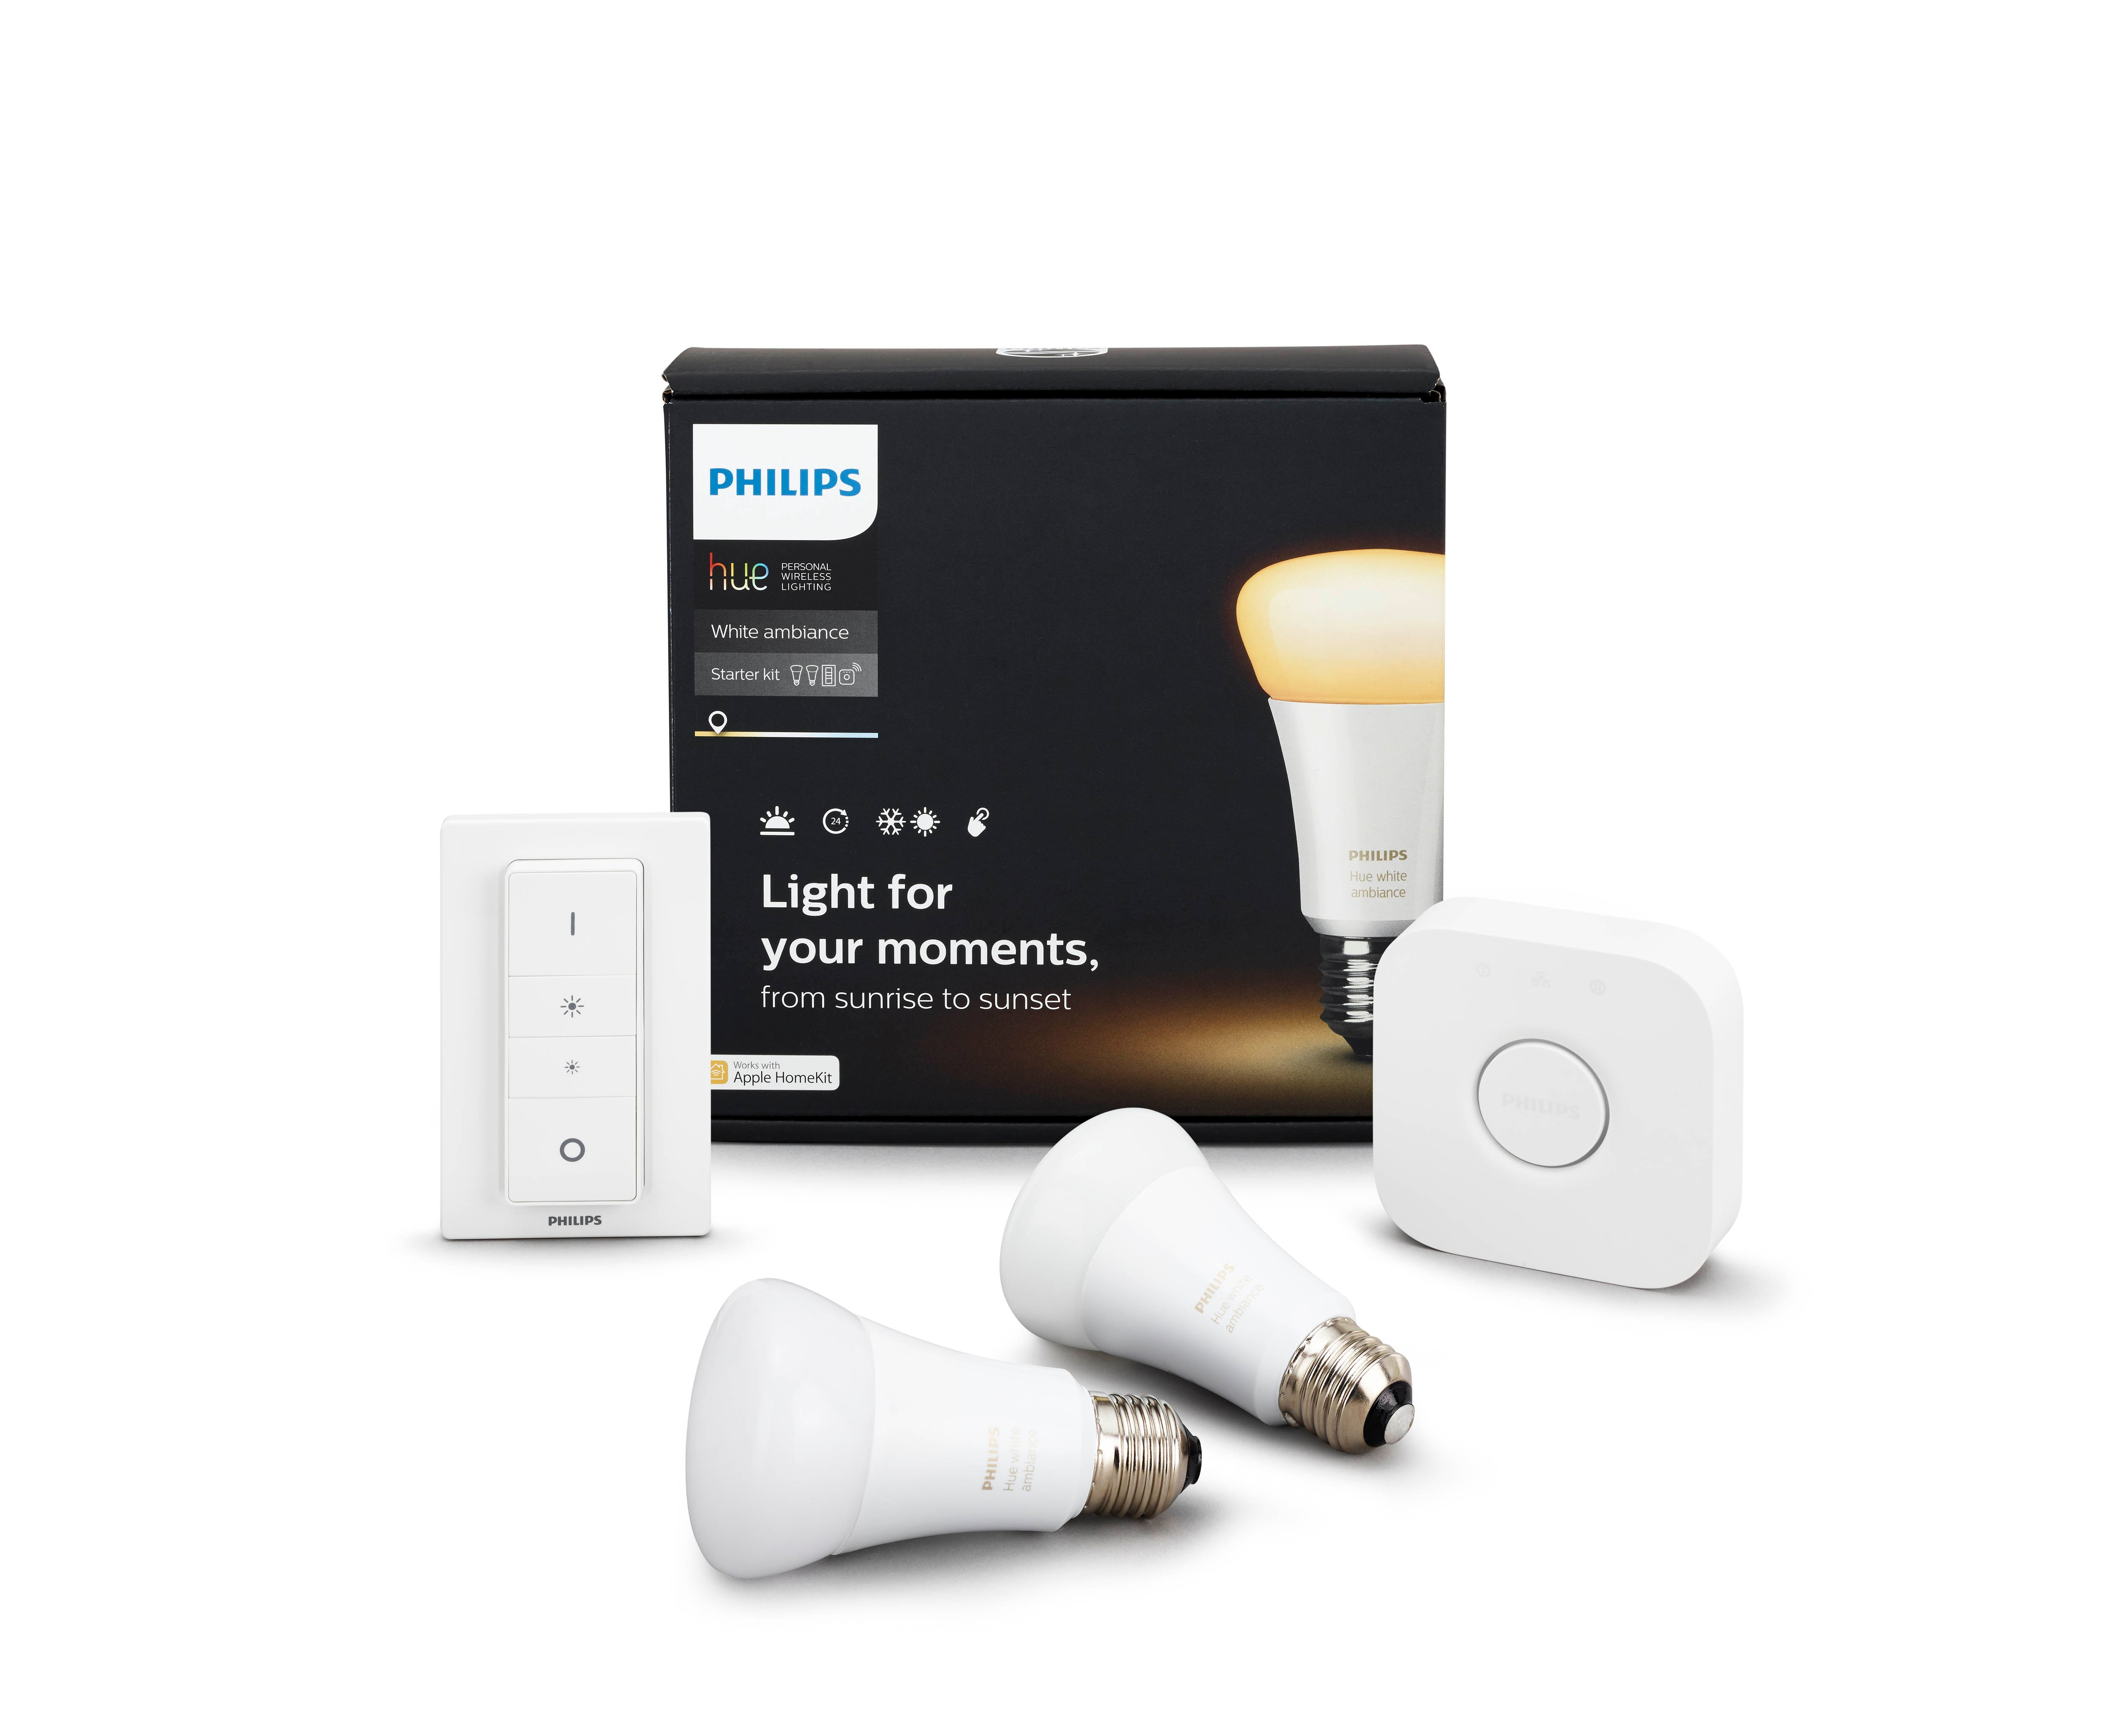 philips hue len] - 100 images - philips hue tap smart nay sk ...